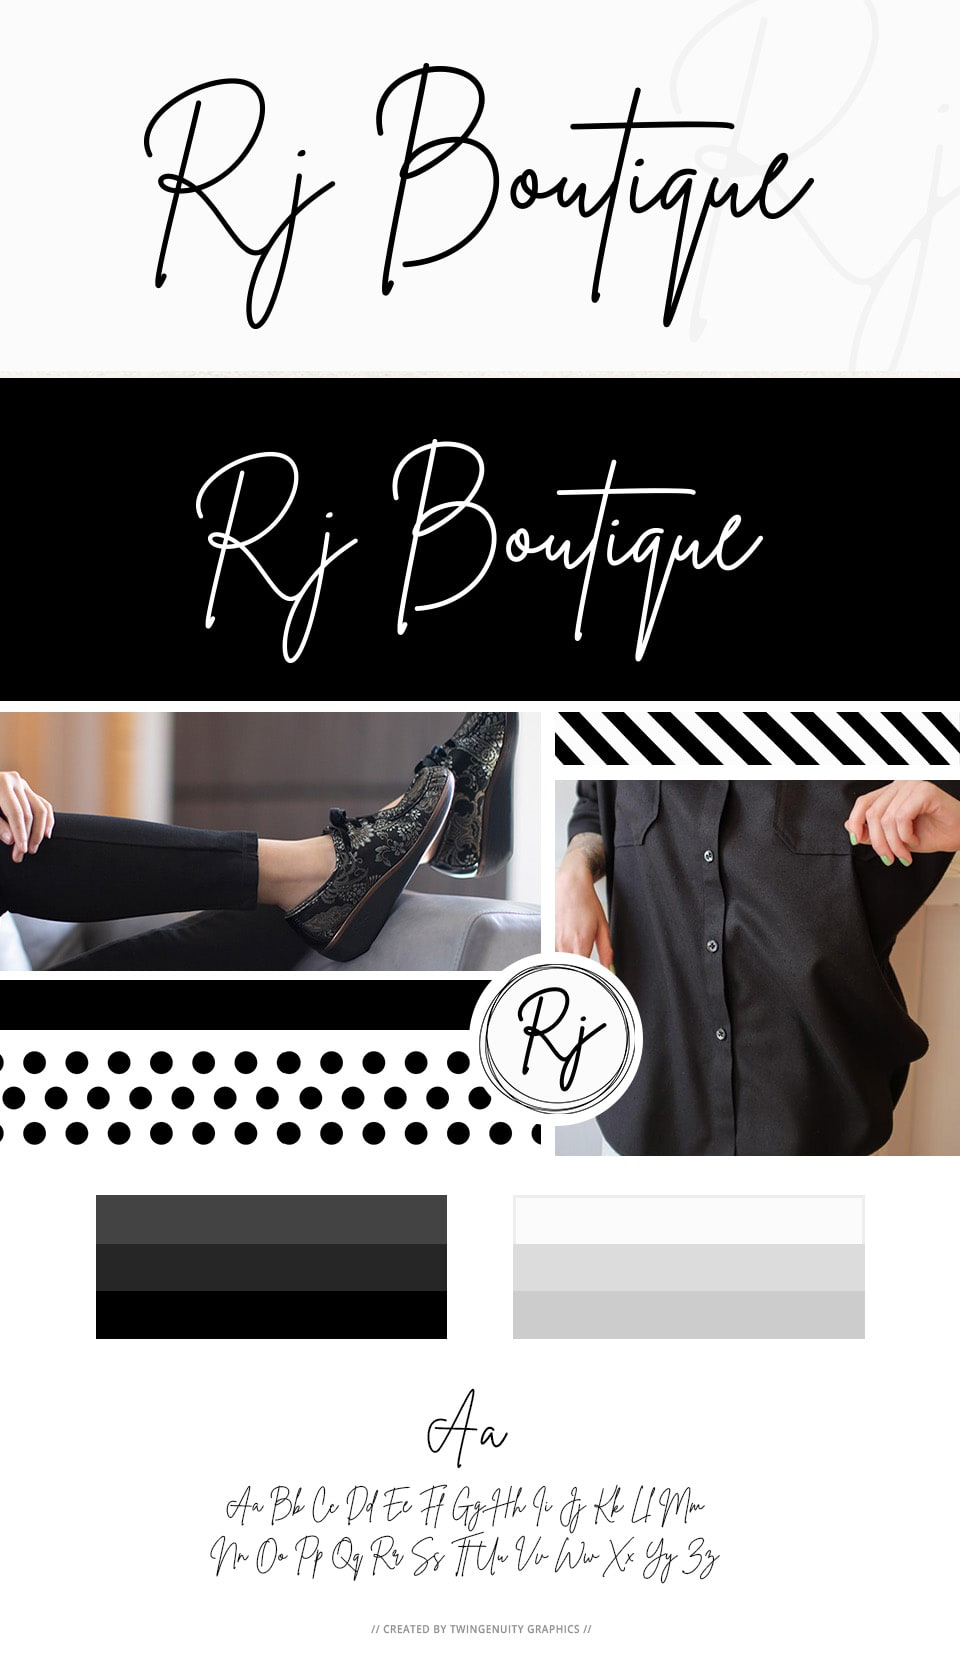 branding board rj boutique logo design